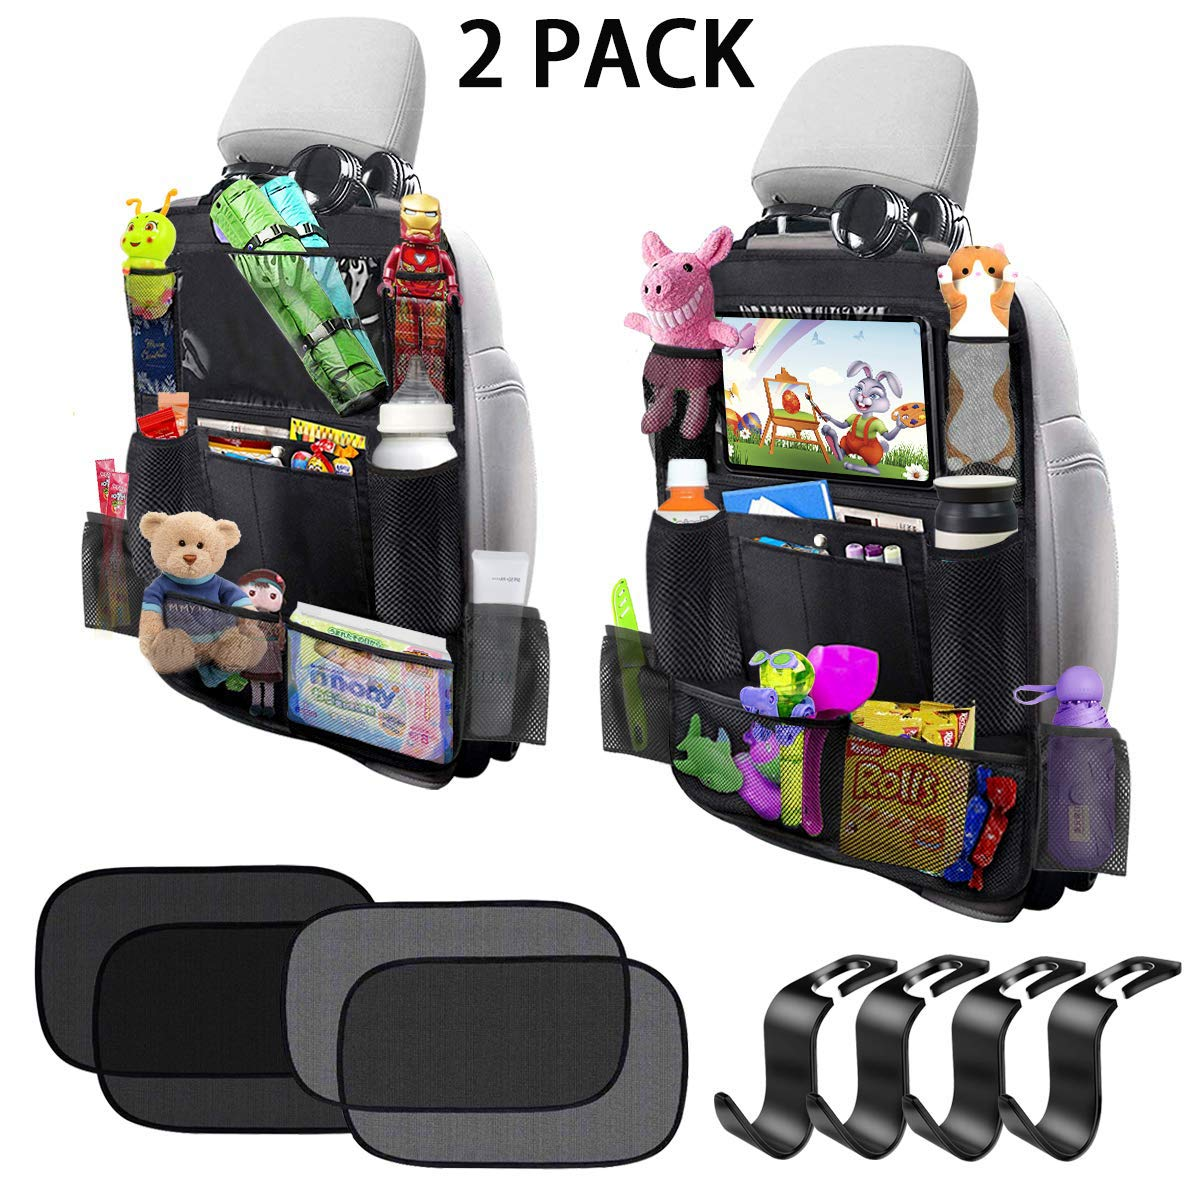 Car Backseat Organizer 2 Pack 11 Storage Pockets Kick Mats with 10'' Touch Screen Tablet Holder Car Seat Back Protector Travel Accessories for Kids Toy Thermal Insulated Pockets Strong Buckle by CHAREADA